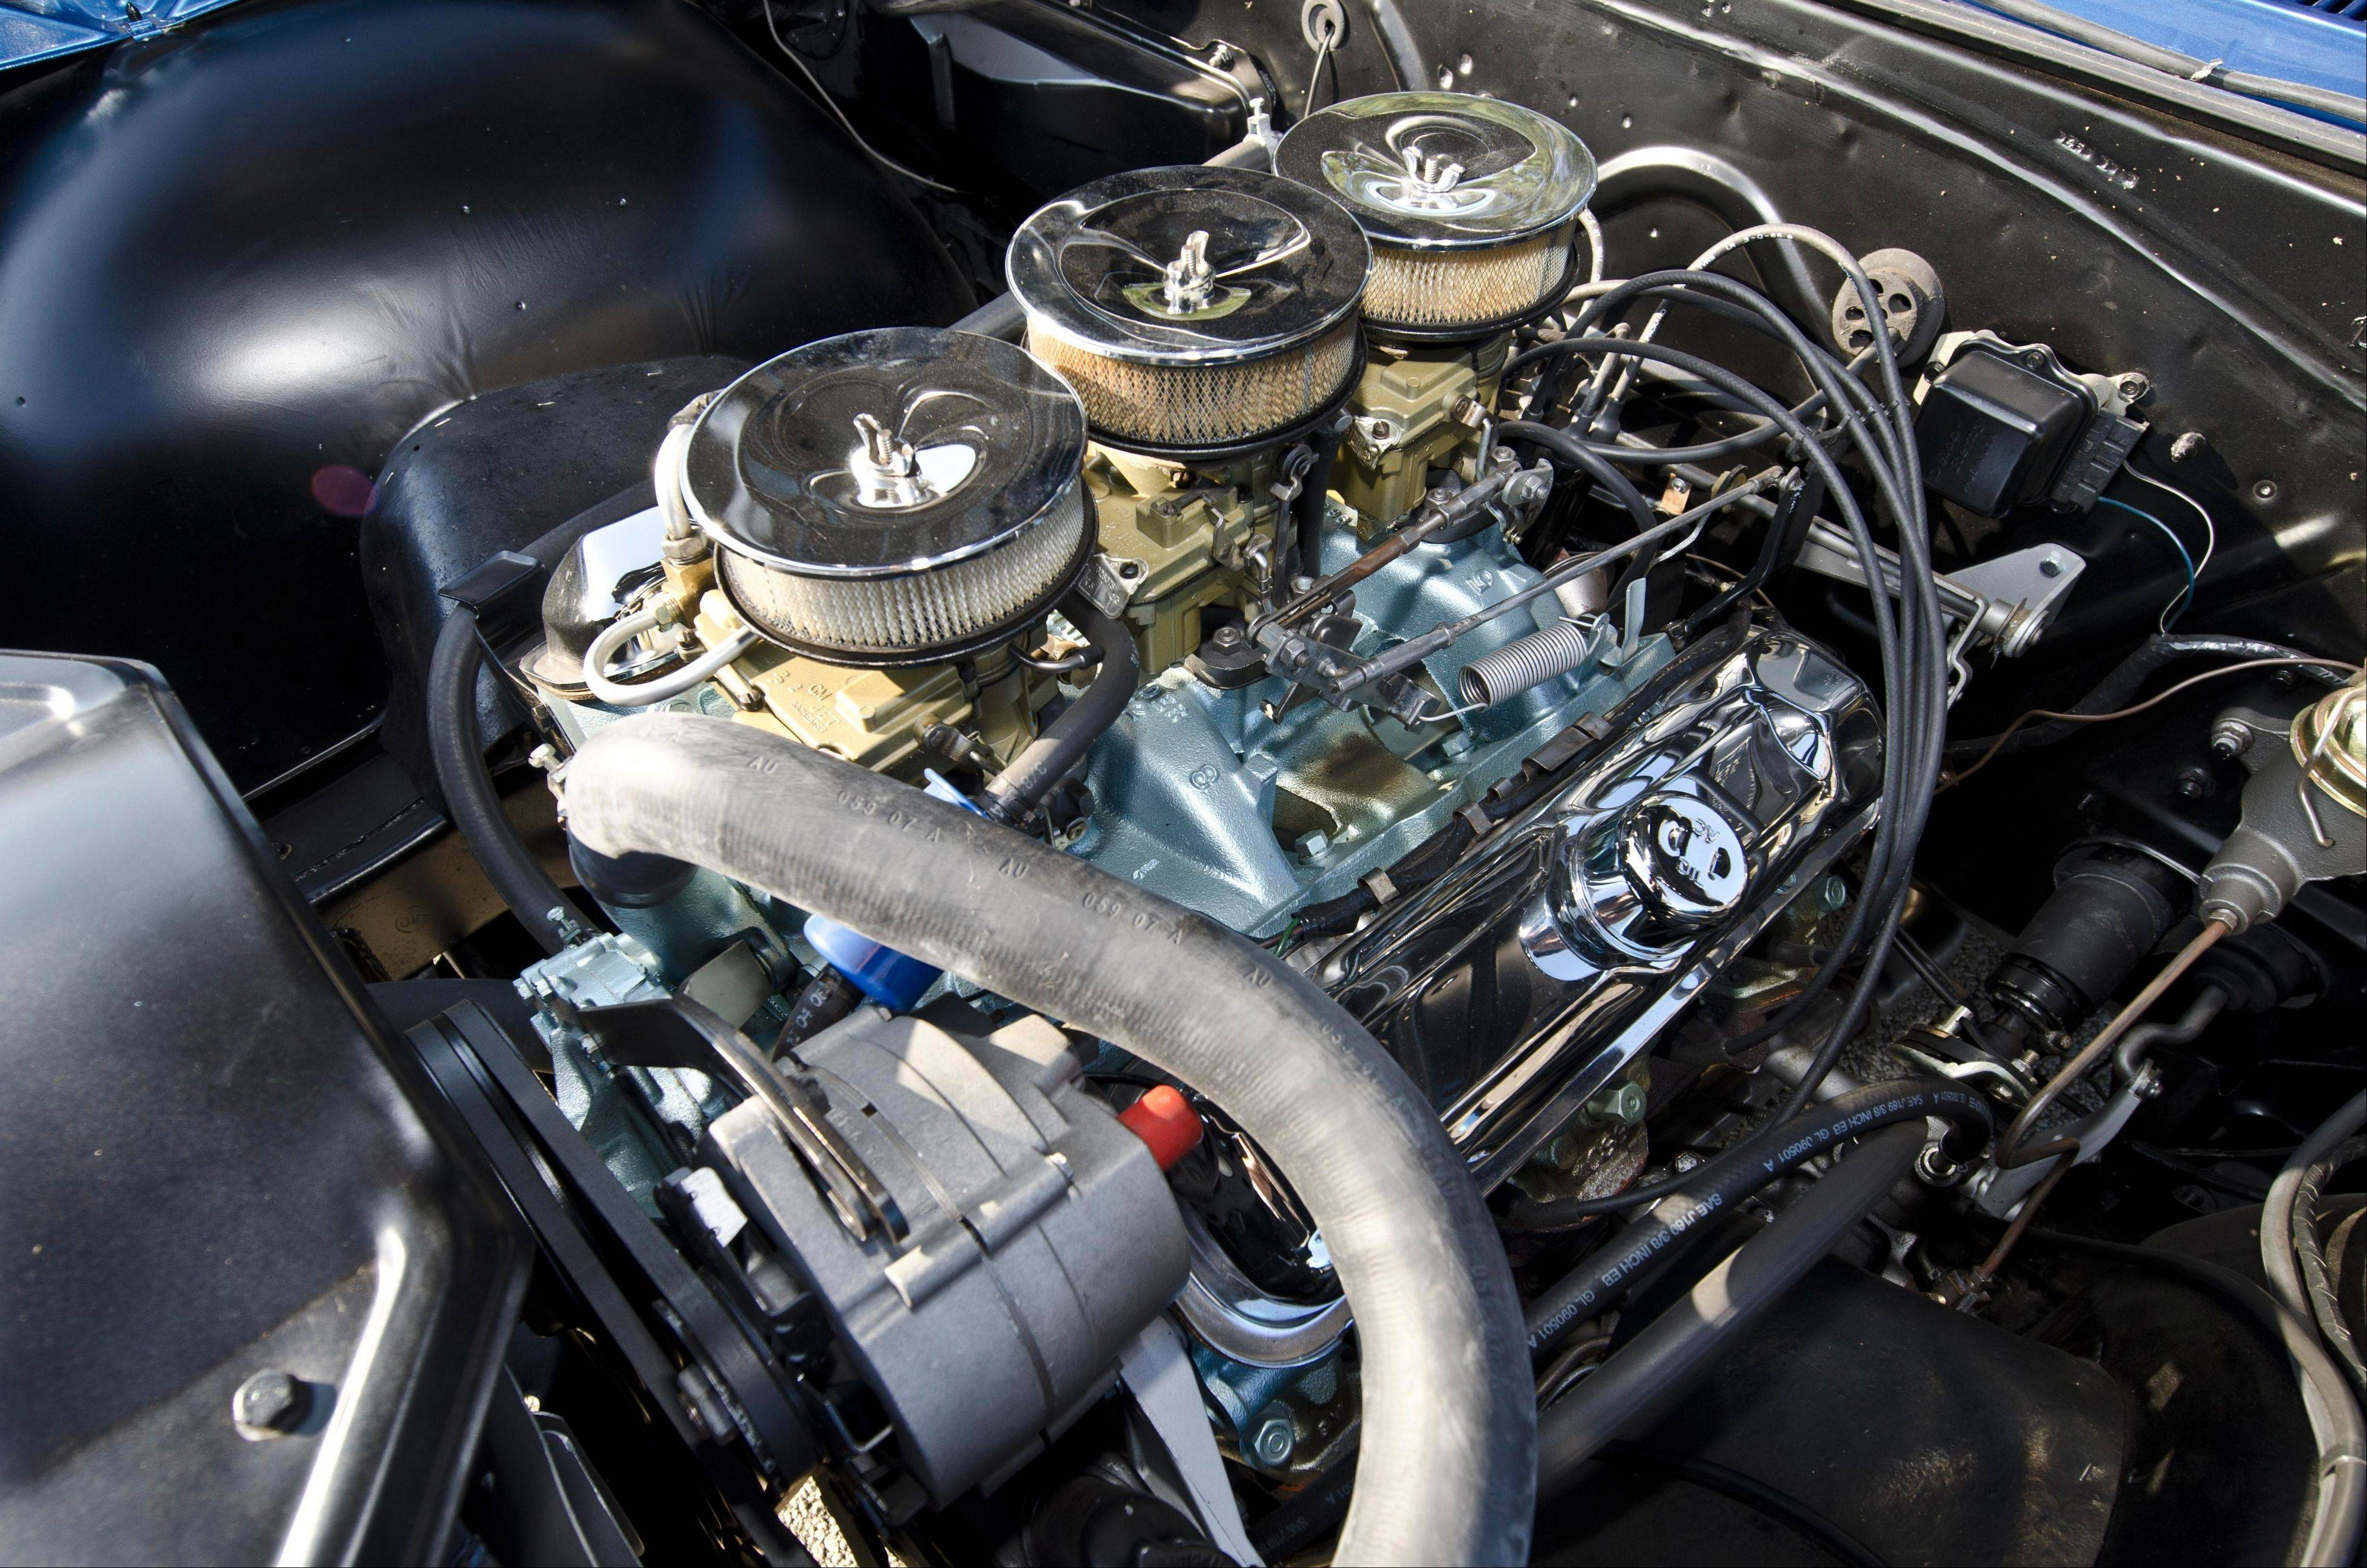 Boris' blue Pontiac 2+2 carries a 421-cubic-inch V-8 with factory tri-power carburetors.